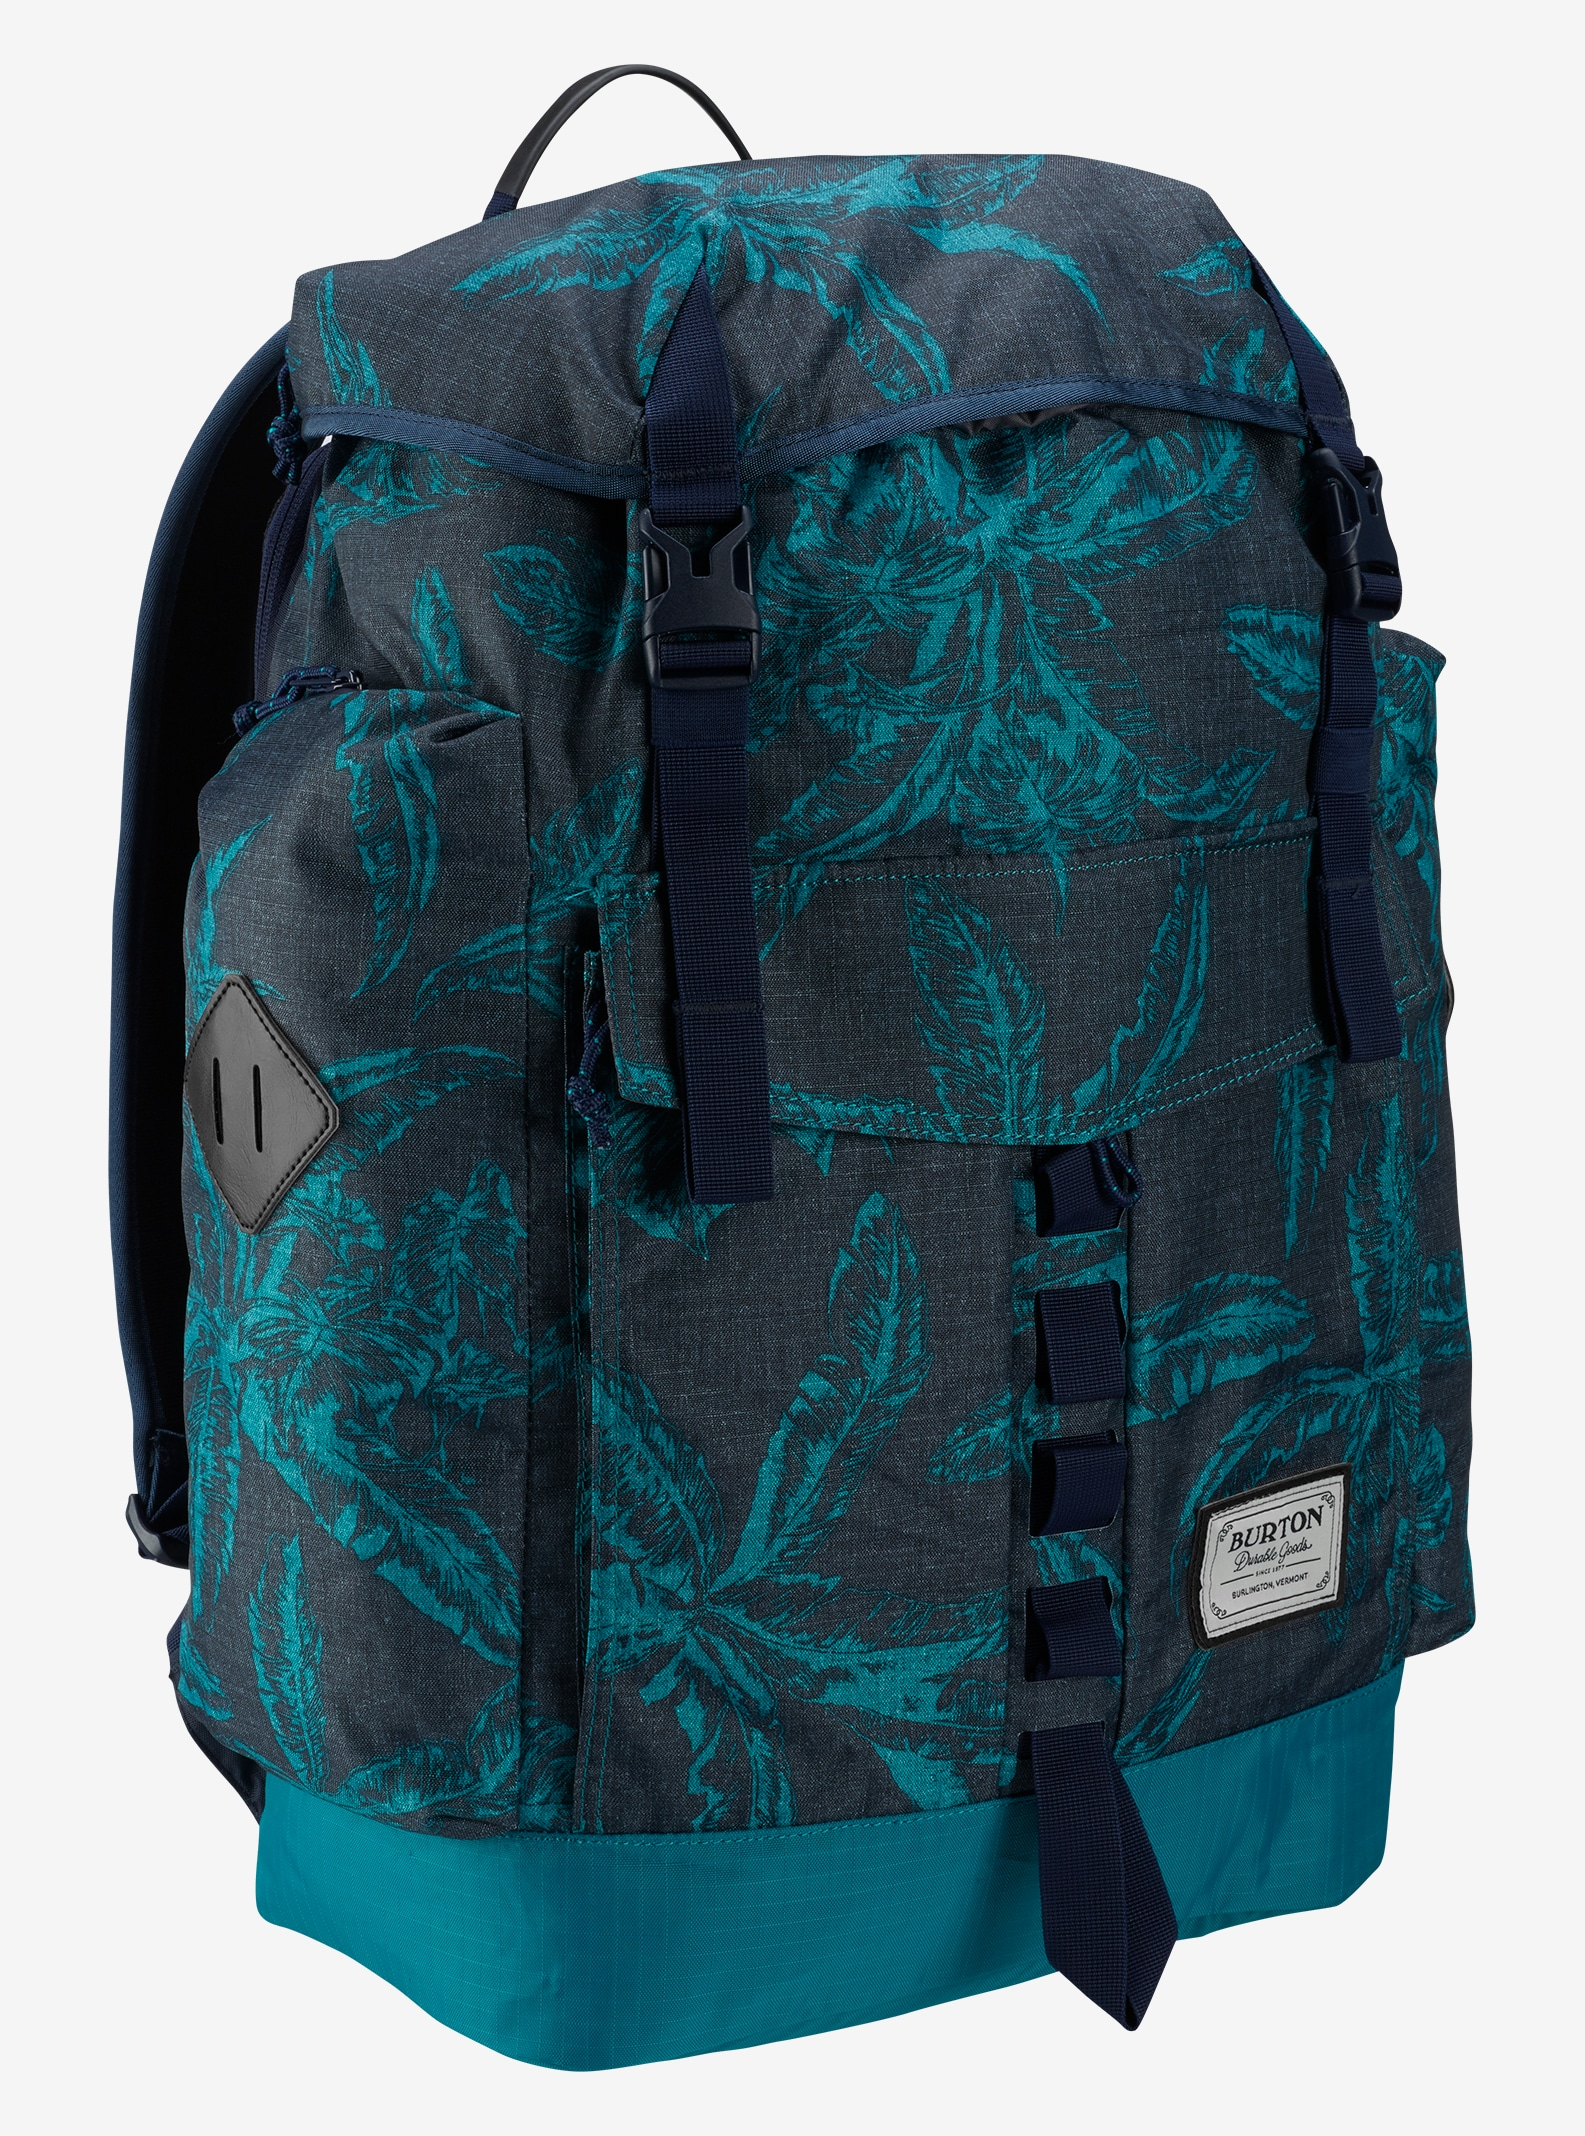 Burton Fathom Backpack shown in Tropical Print